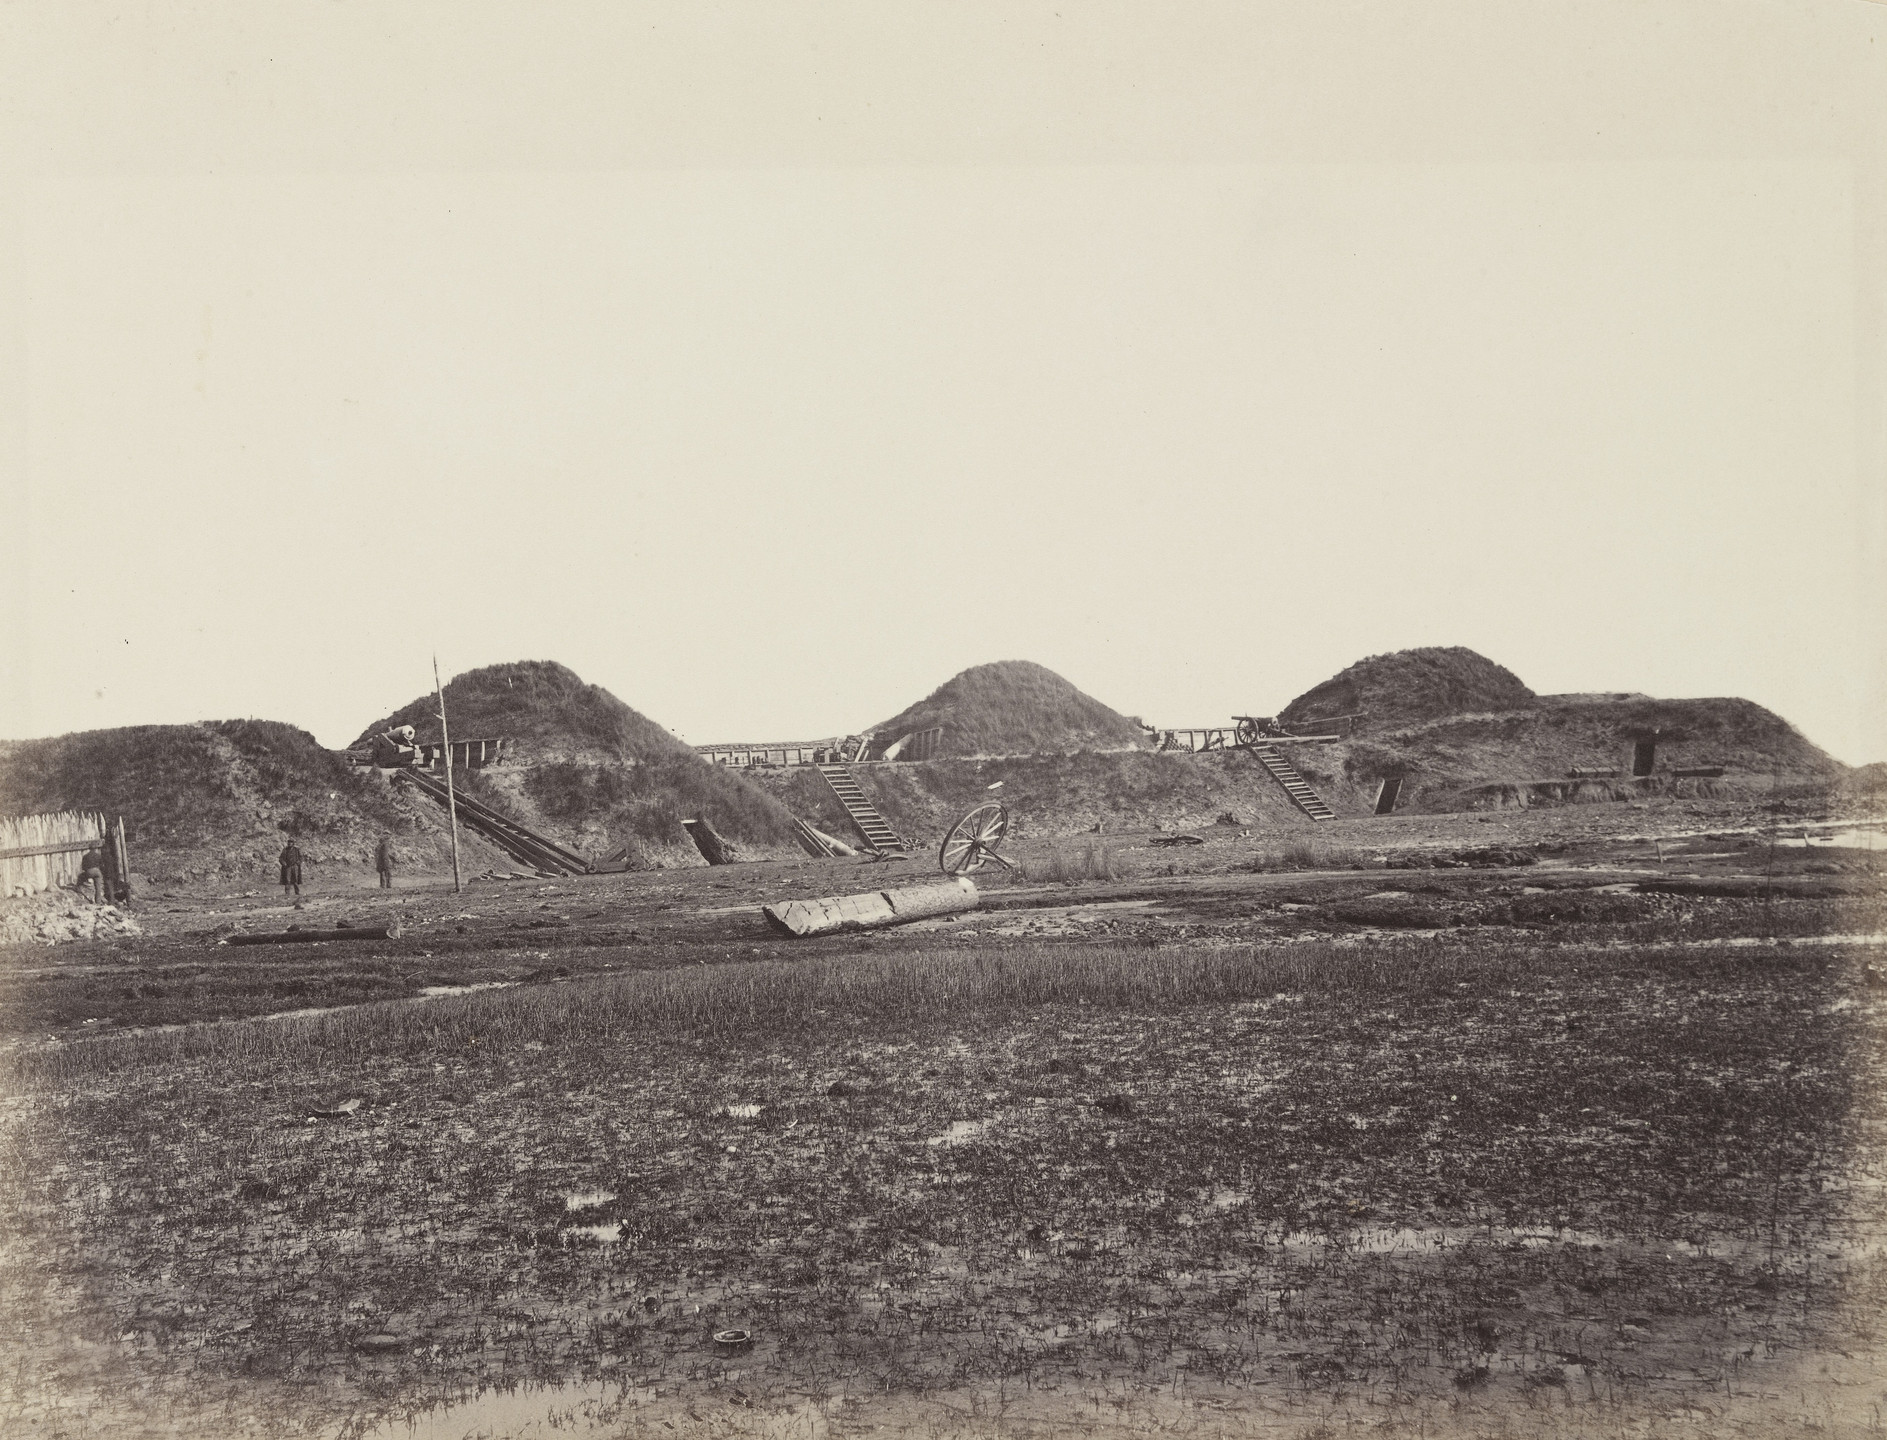 Alexander Gardner, Timothy O'Sullivan. Three first traverses on land end, Fort Fisher, N.C. January, 1865